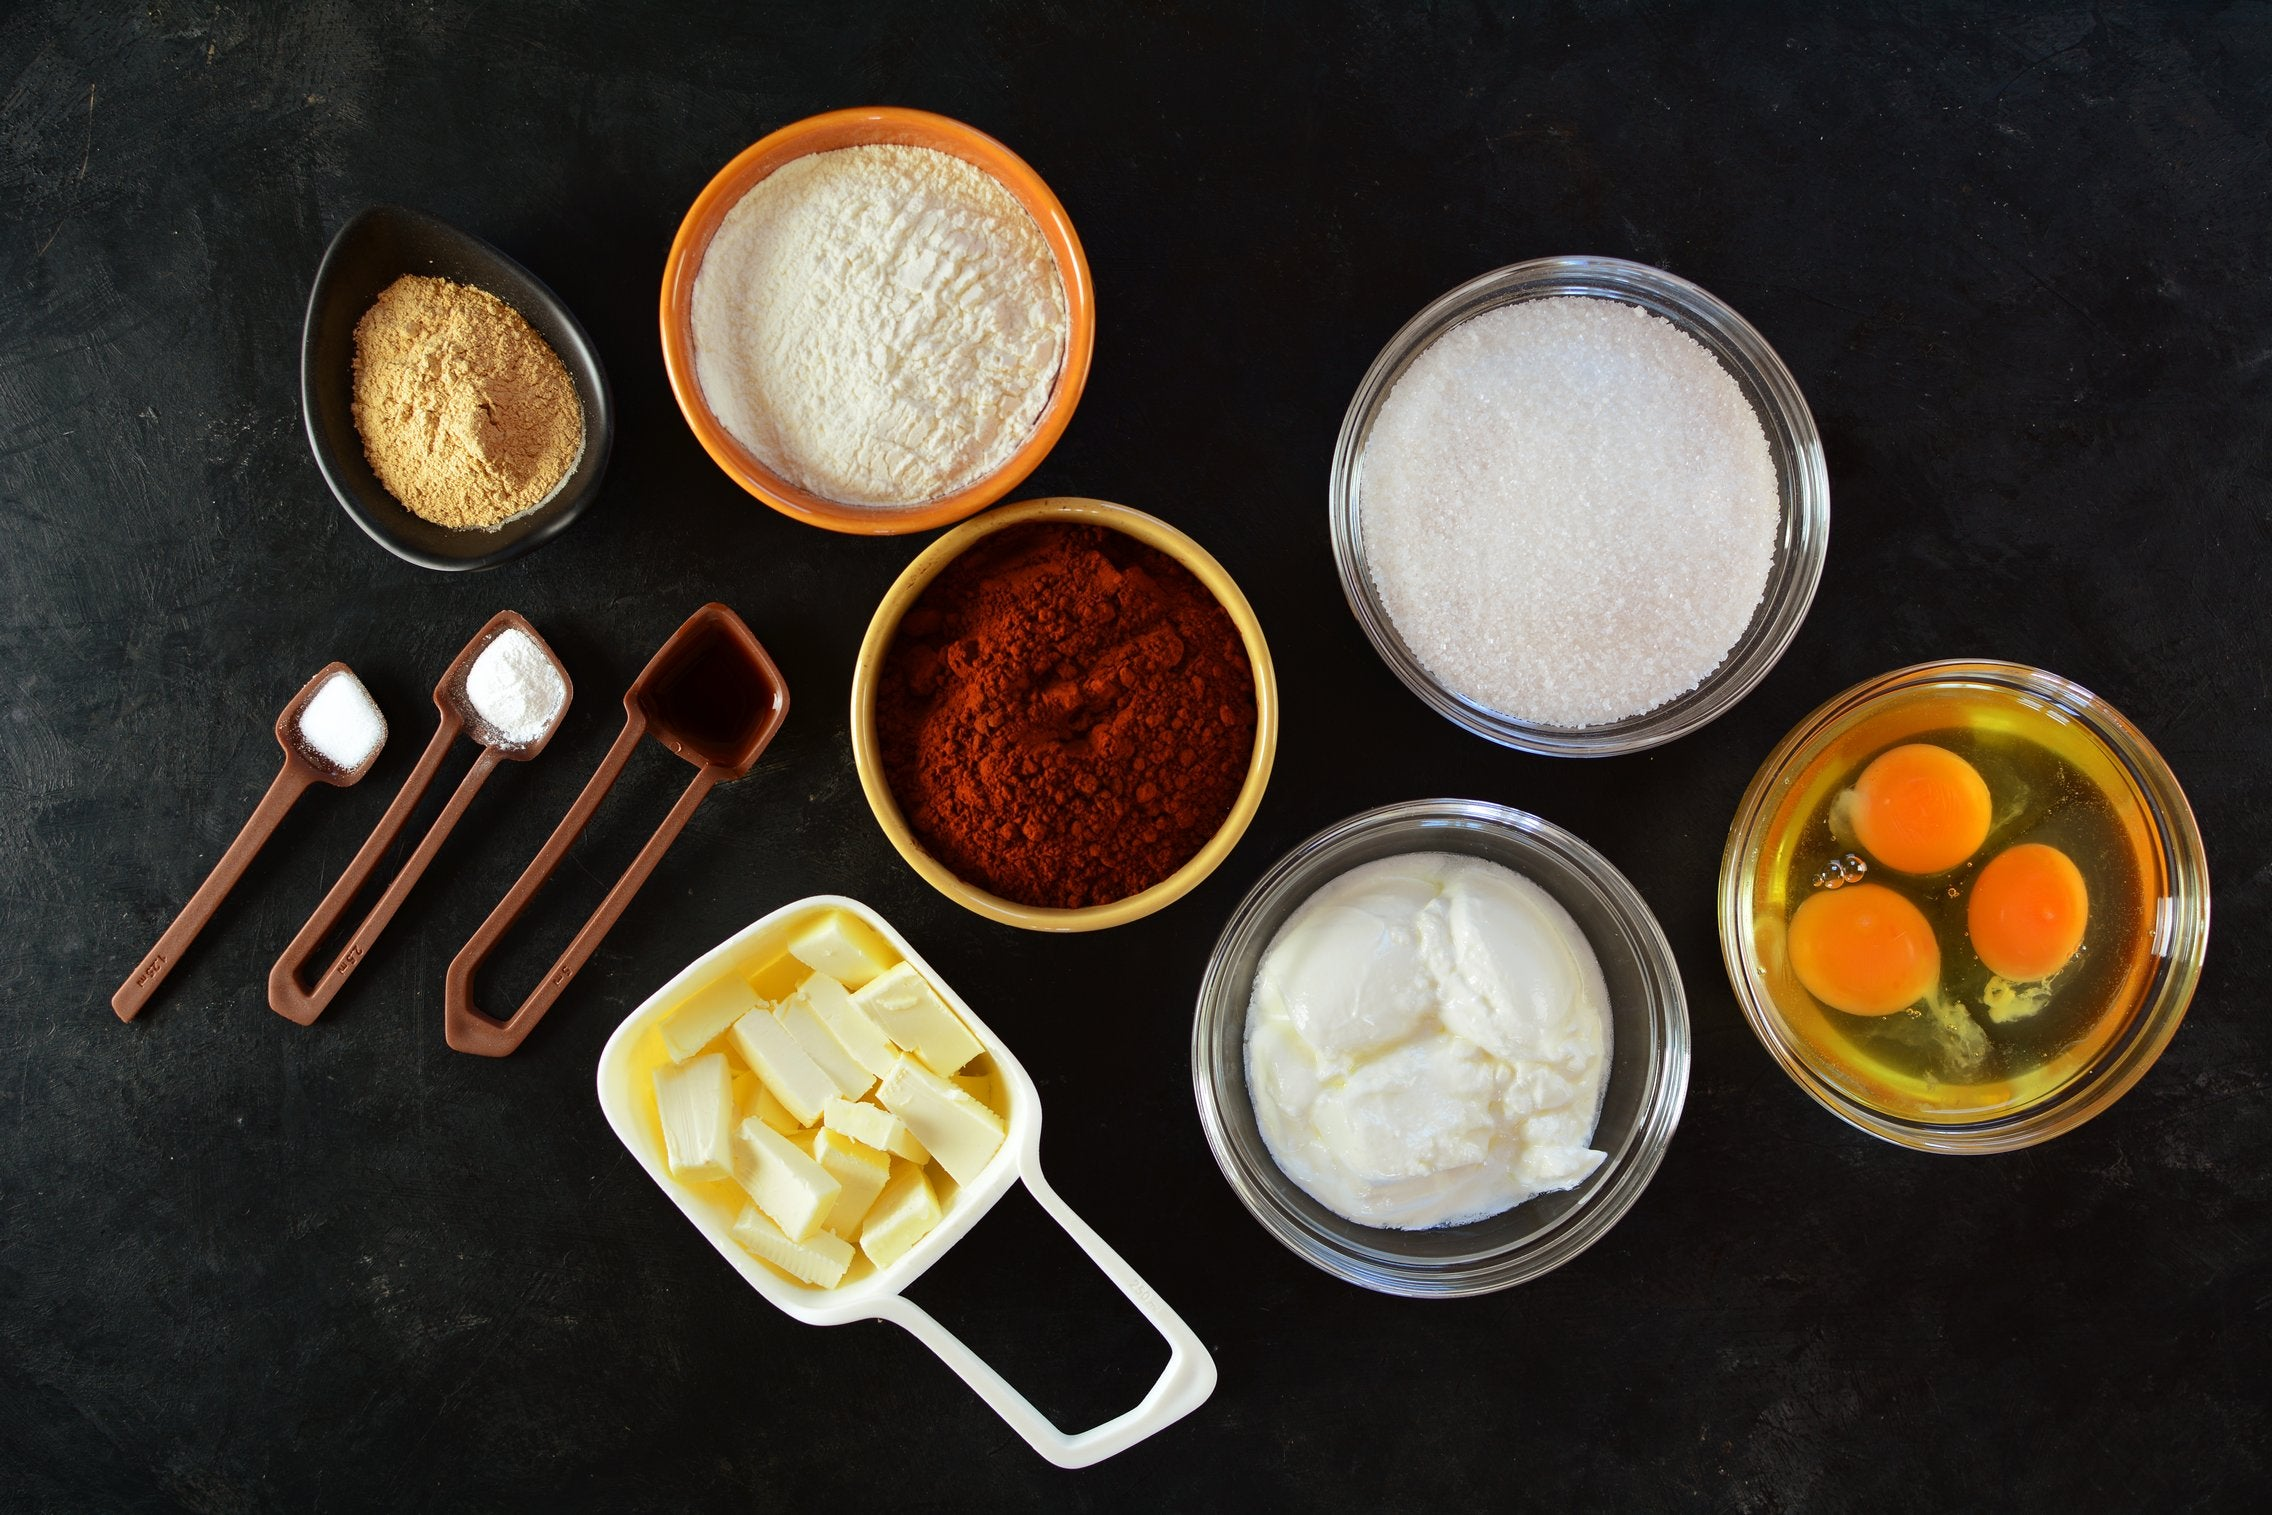 Sunflower Maca Cupcakes - Ingredients